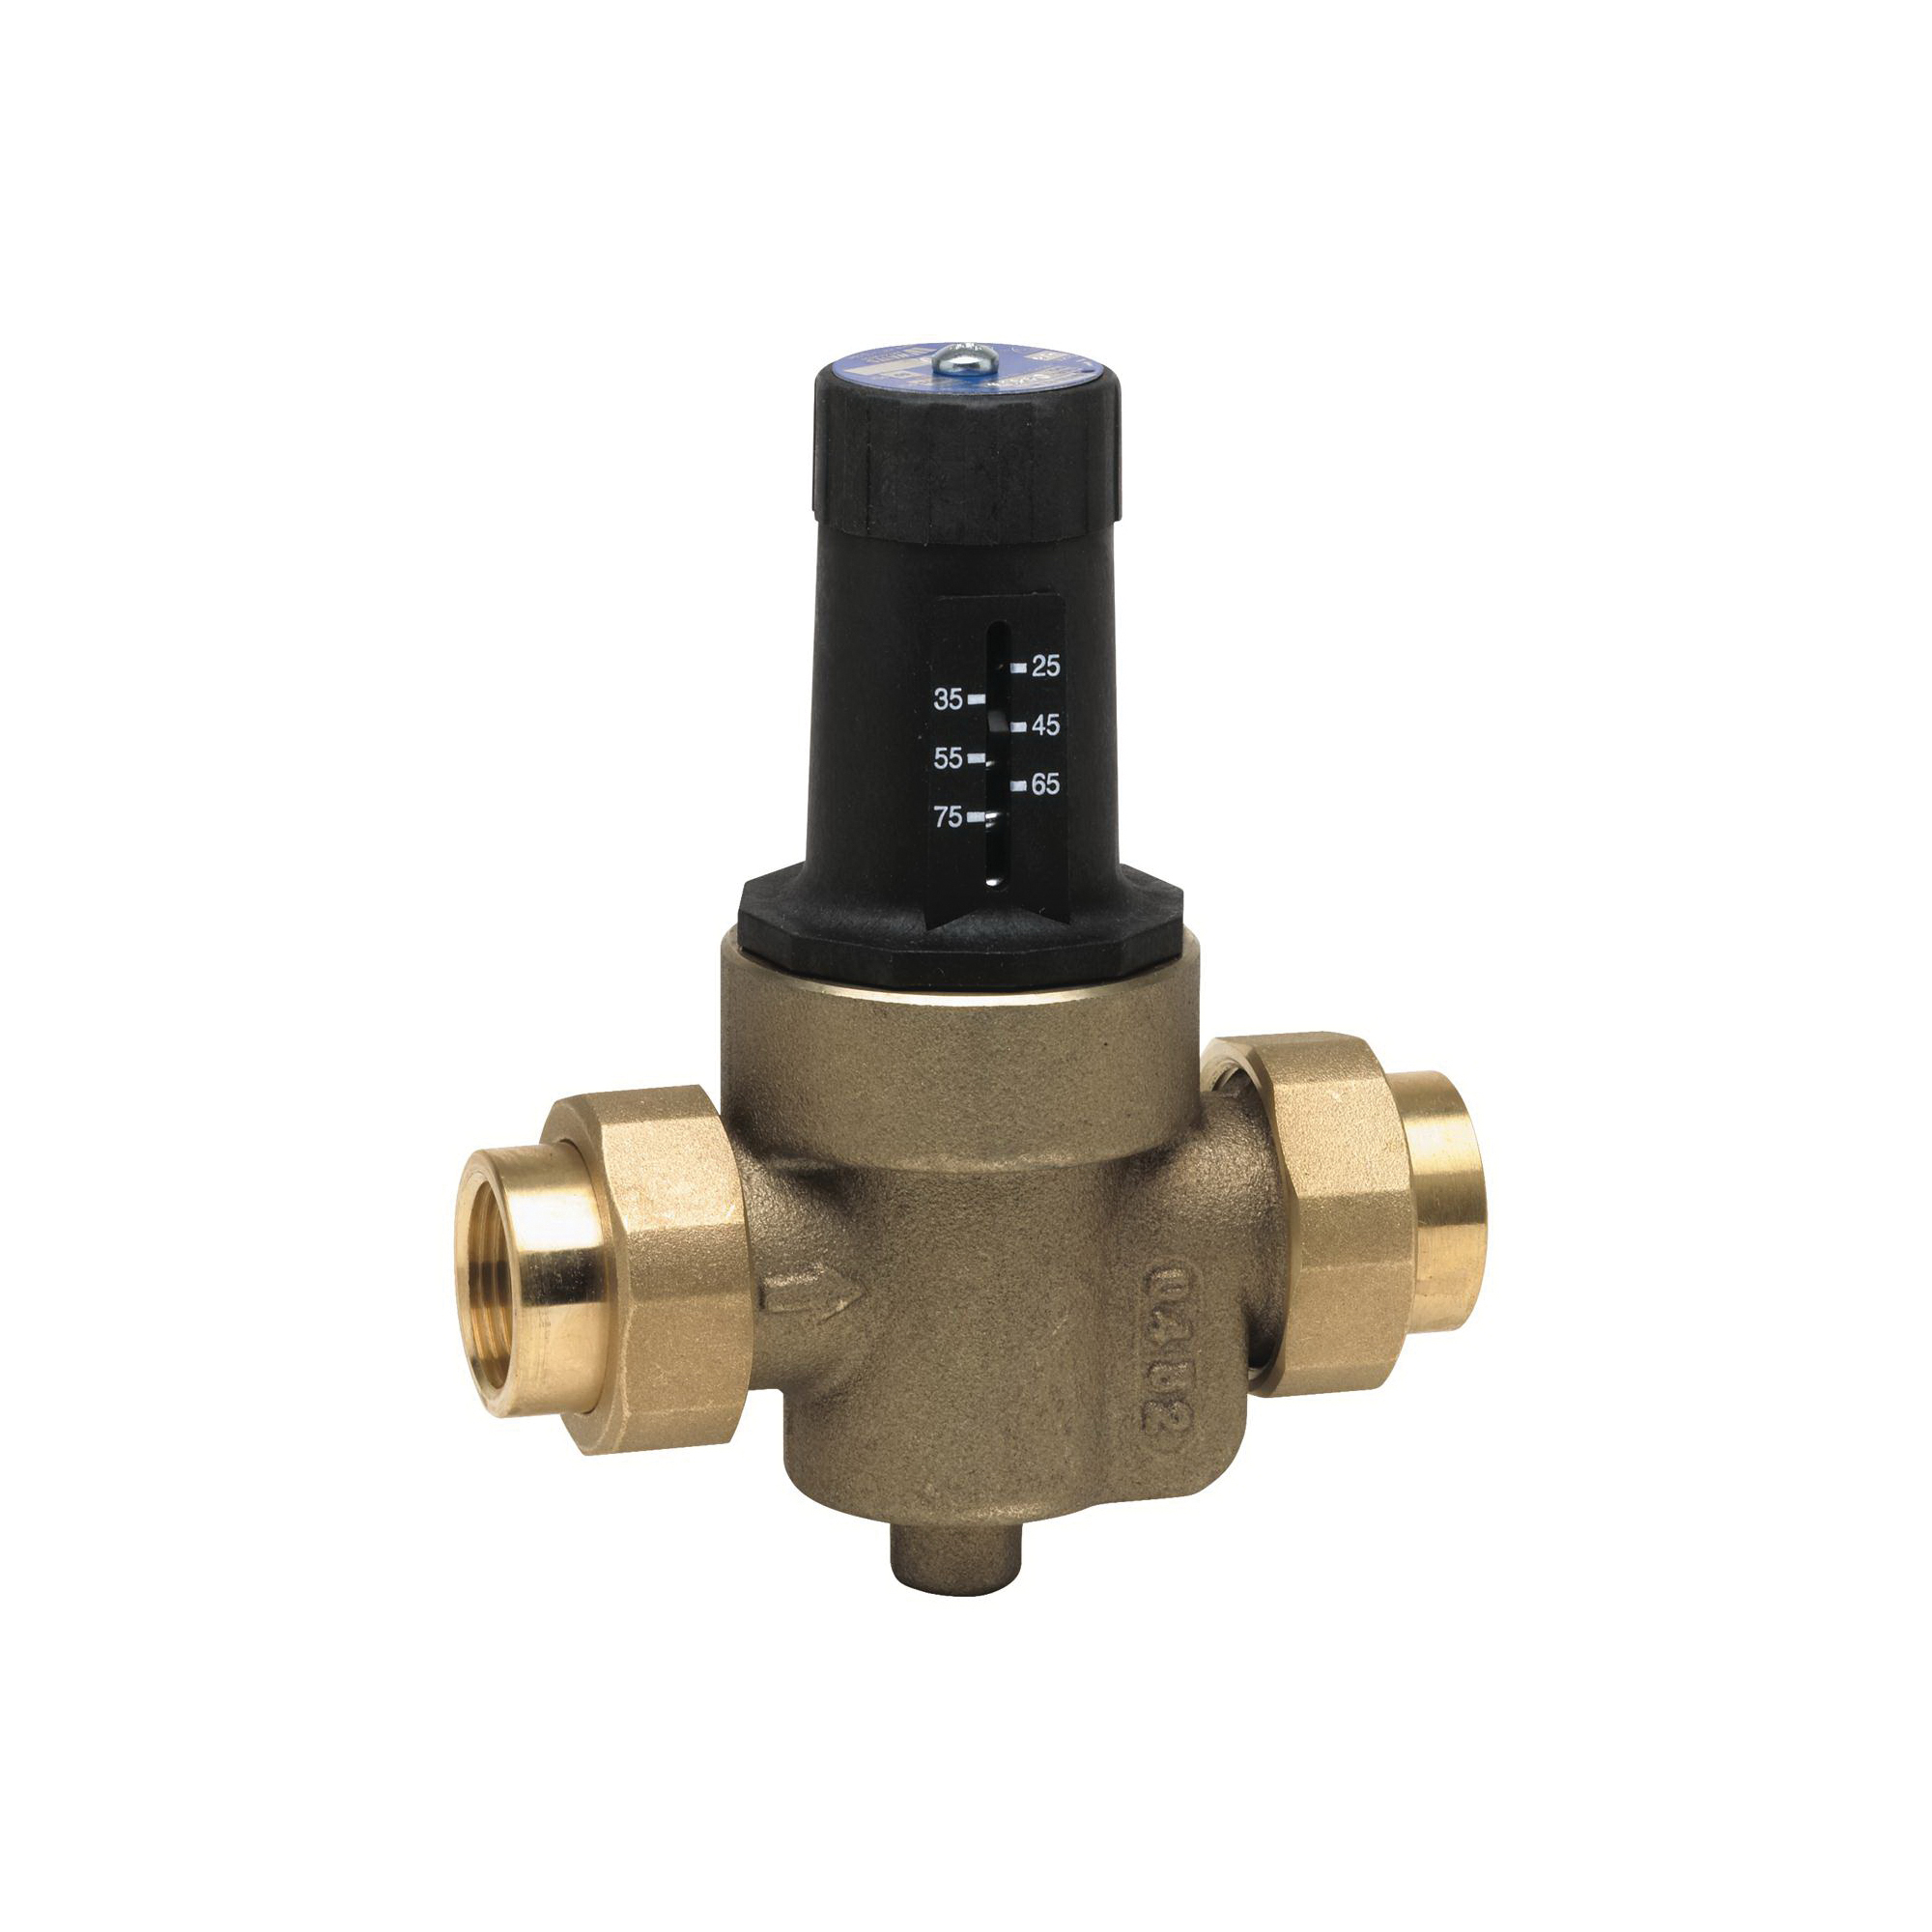 WATTS® LFN45B-M1 Standard Capacity Lead Free Pressure Reducing Valve, 3/4 in, Double Union FNPT, 400 psi Working